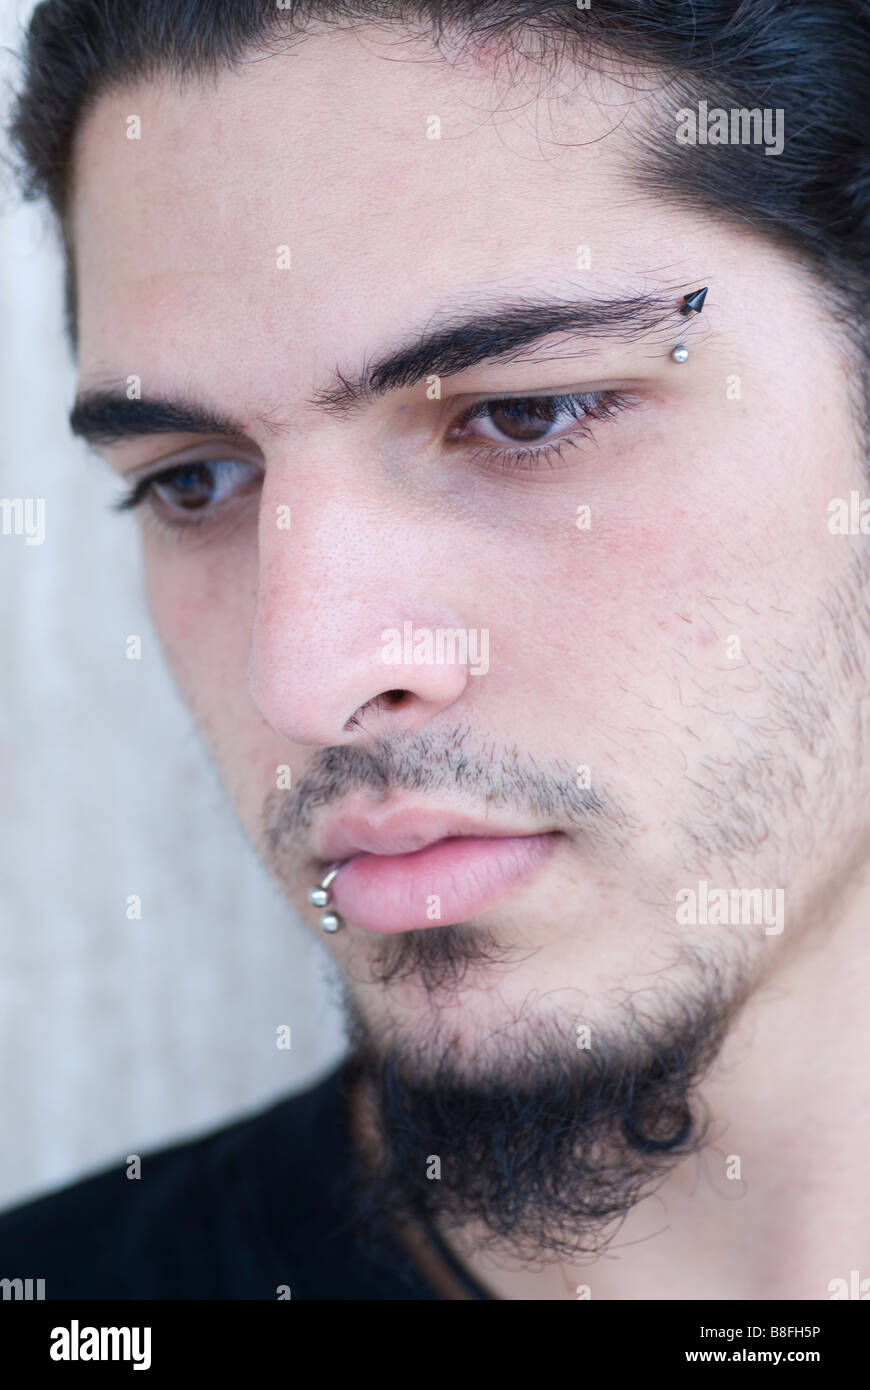 Pierced Eyebrow Stock Photos Pierced Eyebrow Stock Images Alamy